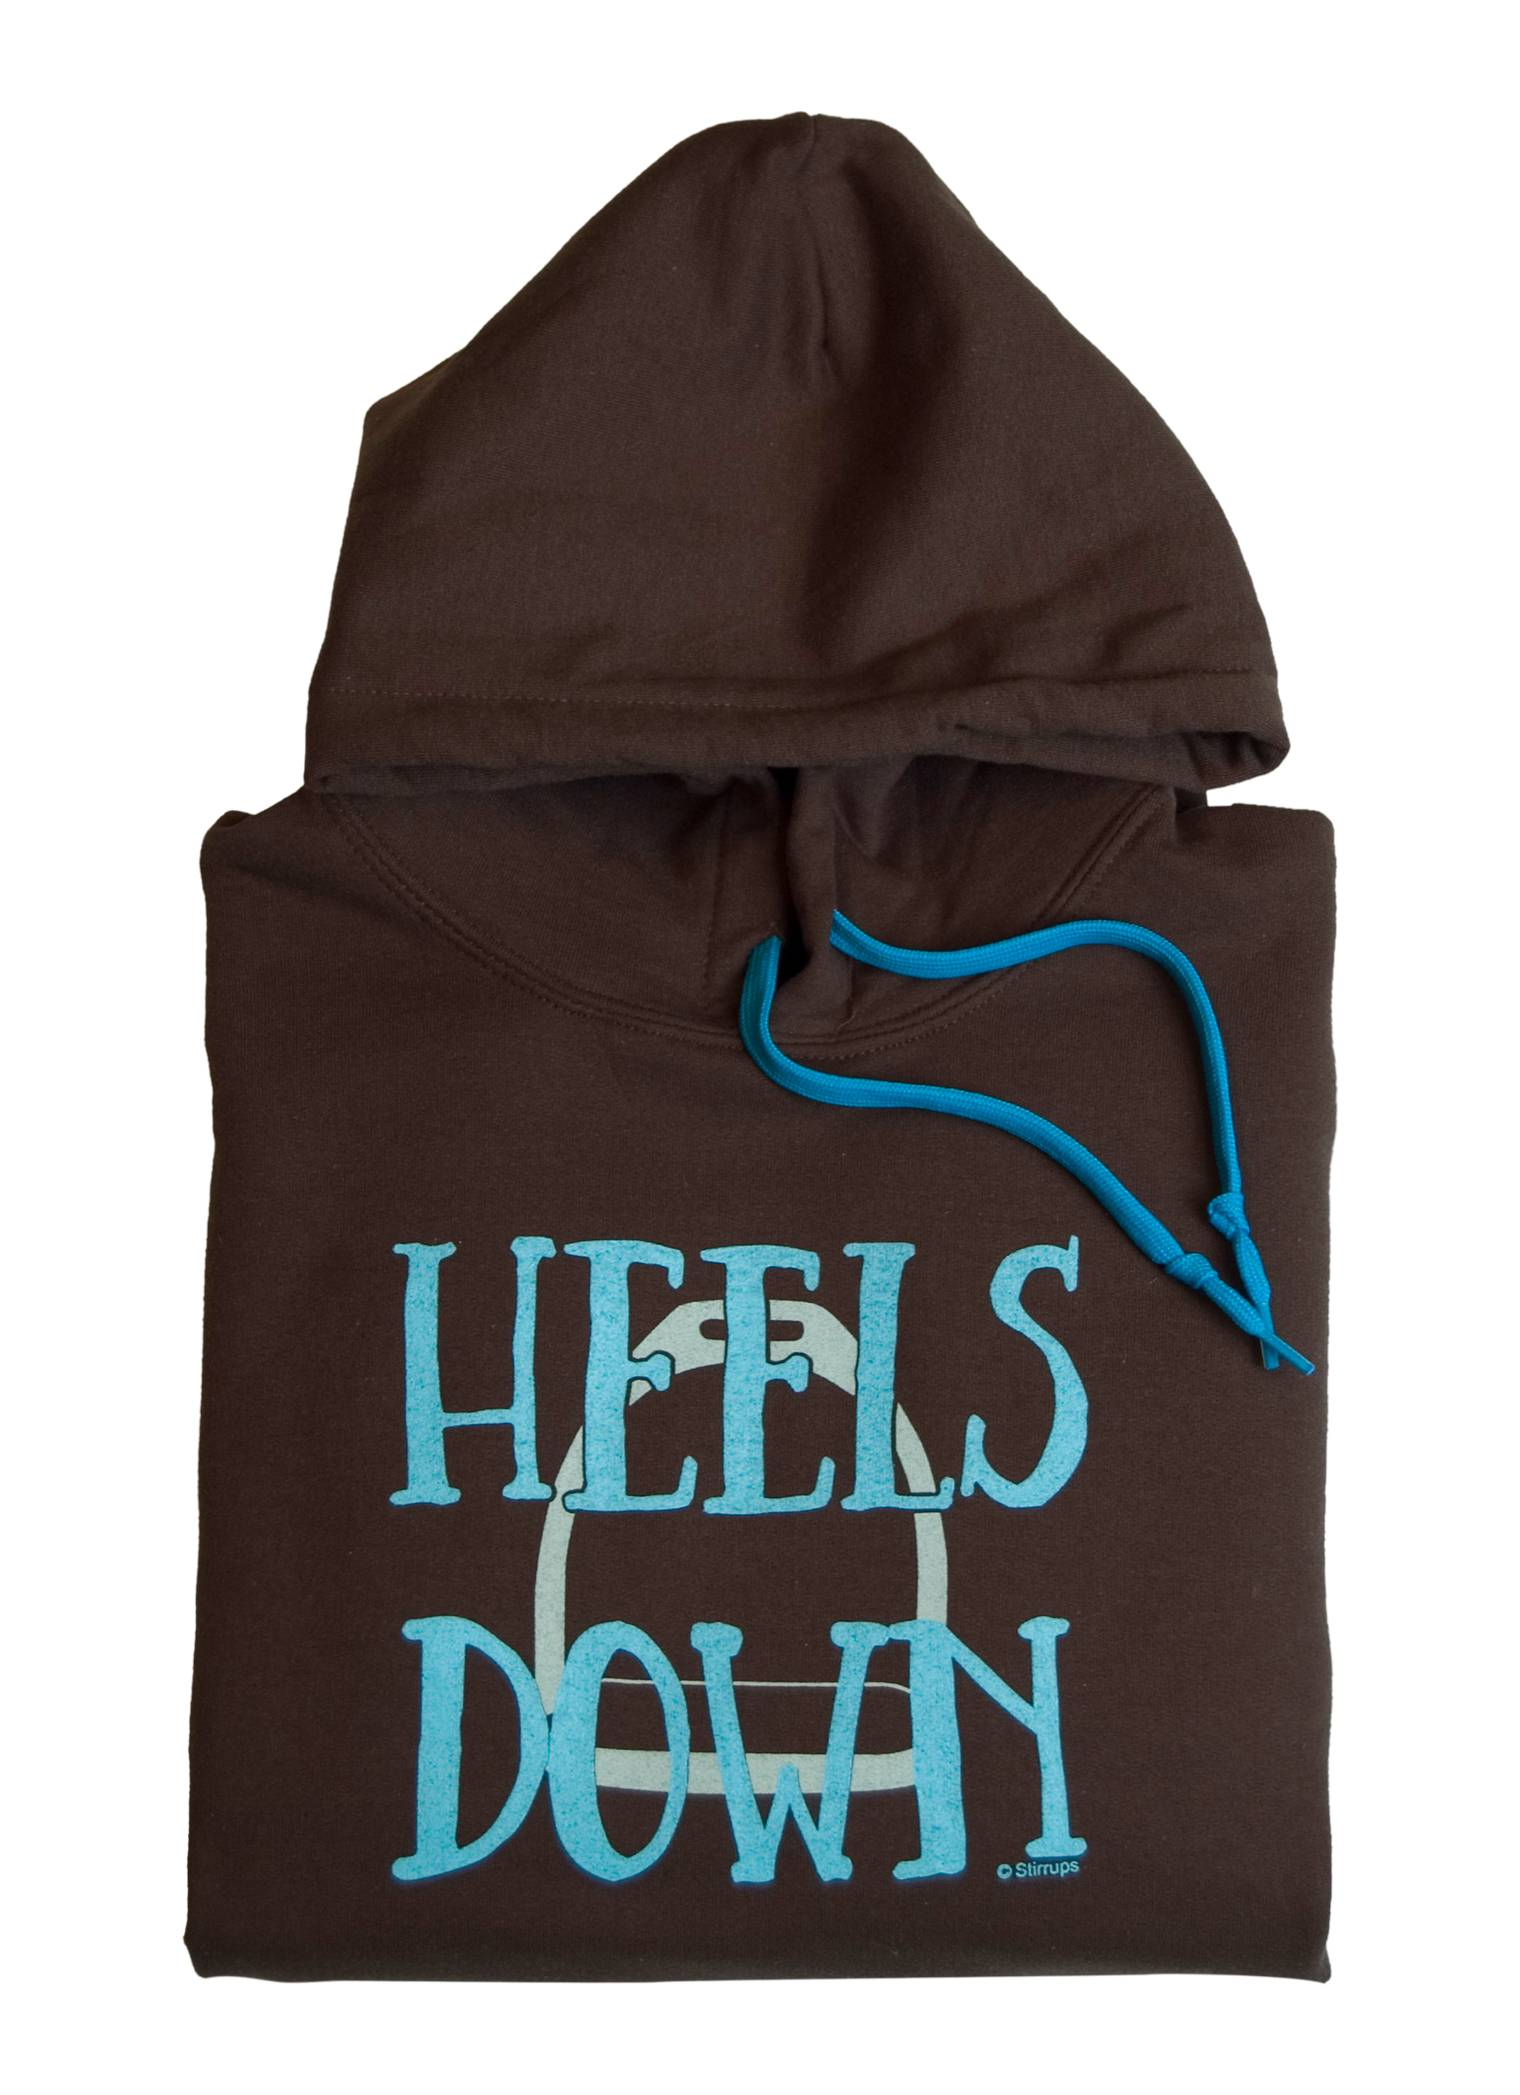 Stirrups Ladies Heels Down Hooded Sweatshirt